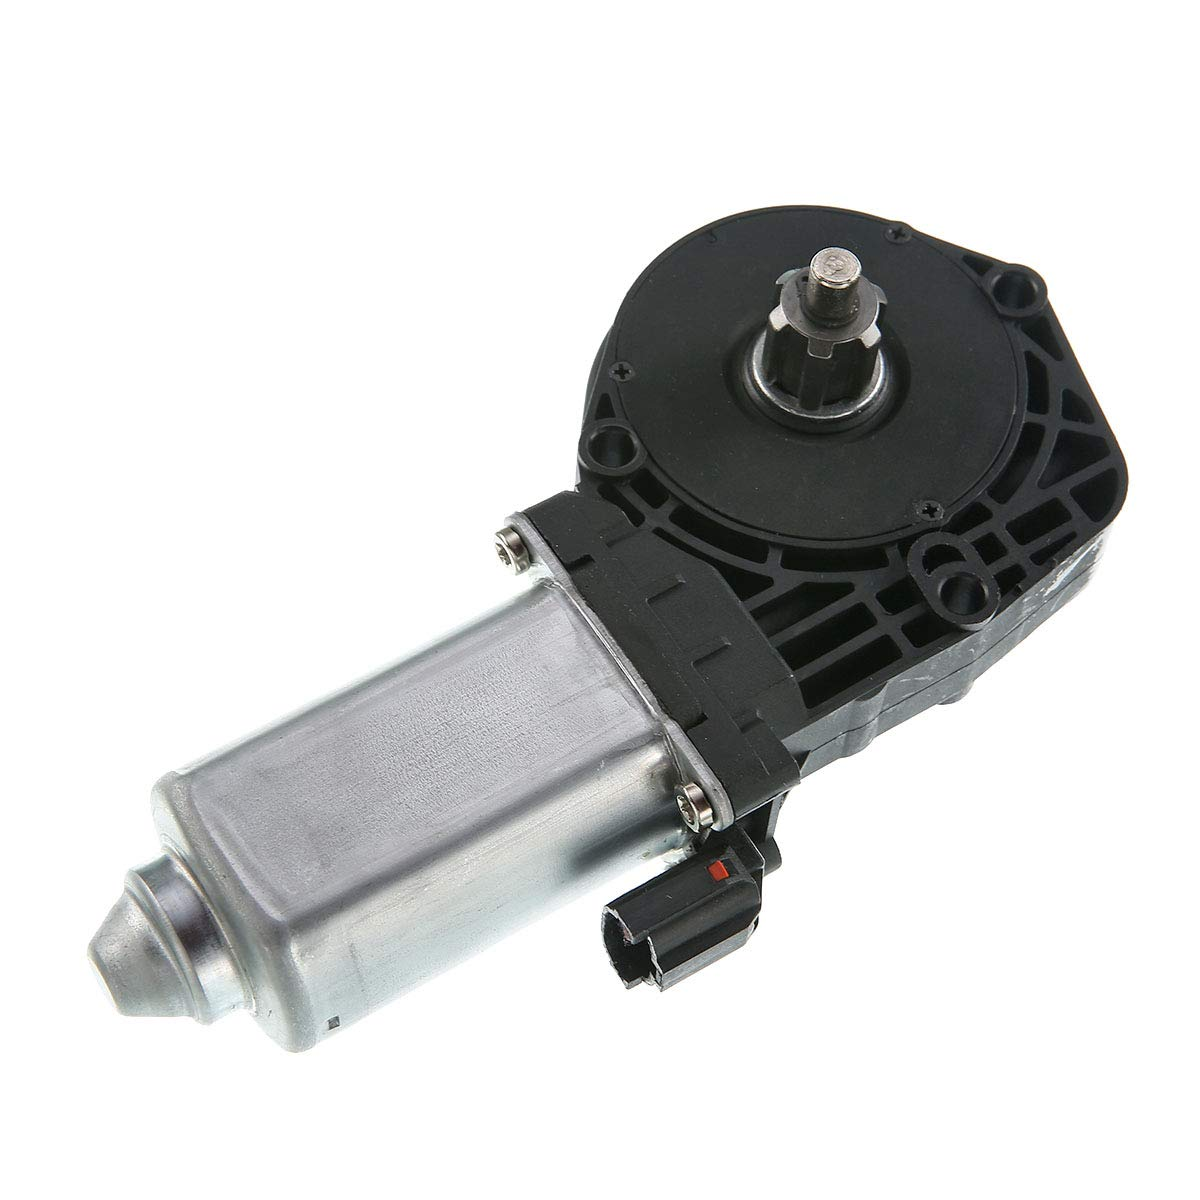 A-Premium Power Window Lift Motor Without Anti-Clip Compatible with Ford Expedition Explorer Lincoln Aviator Mercury Mountaineer 2002-2006 Driver or Passenger Side